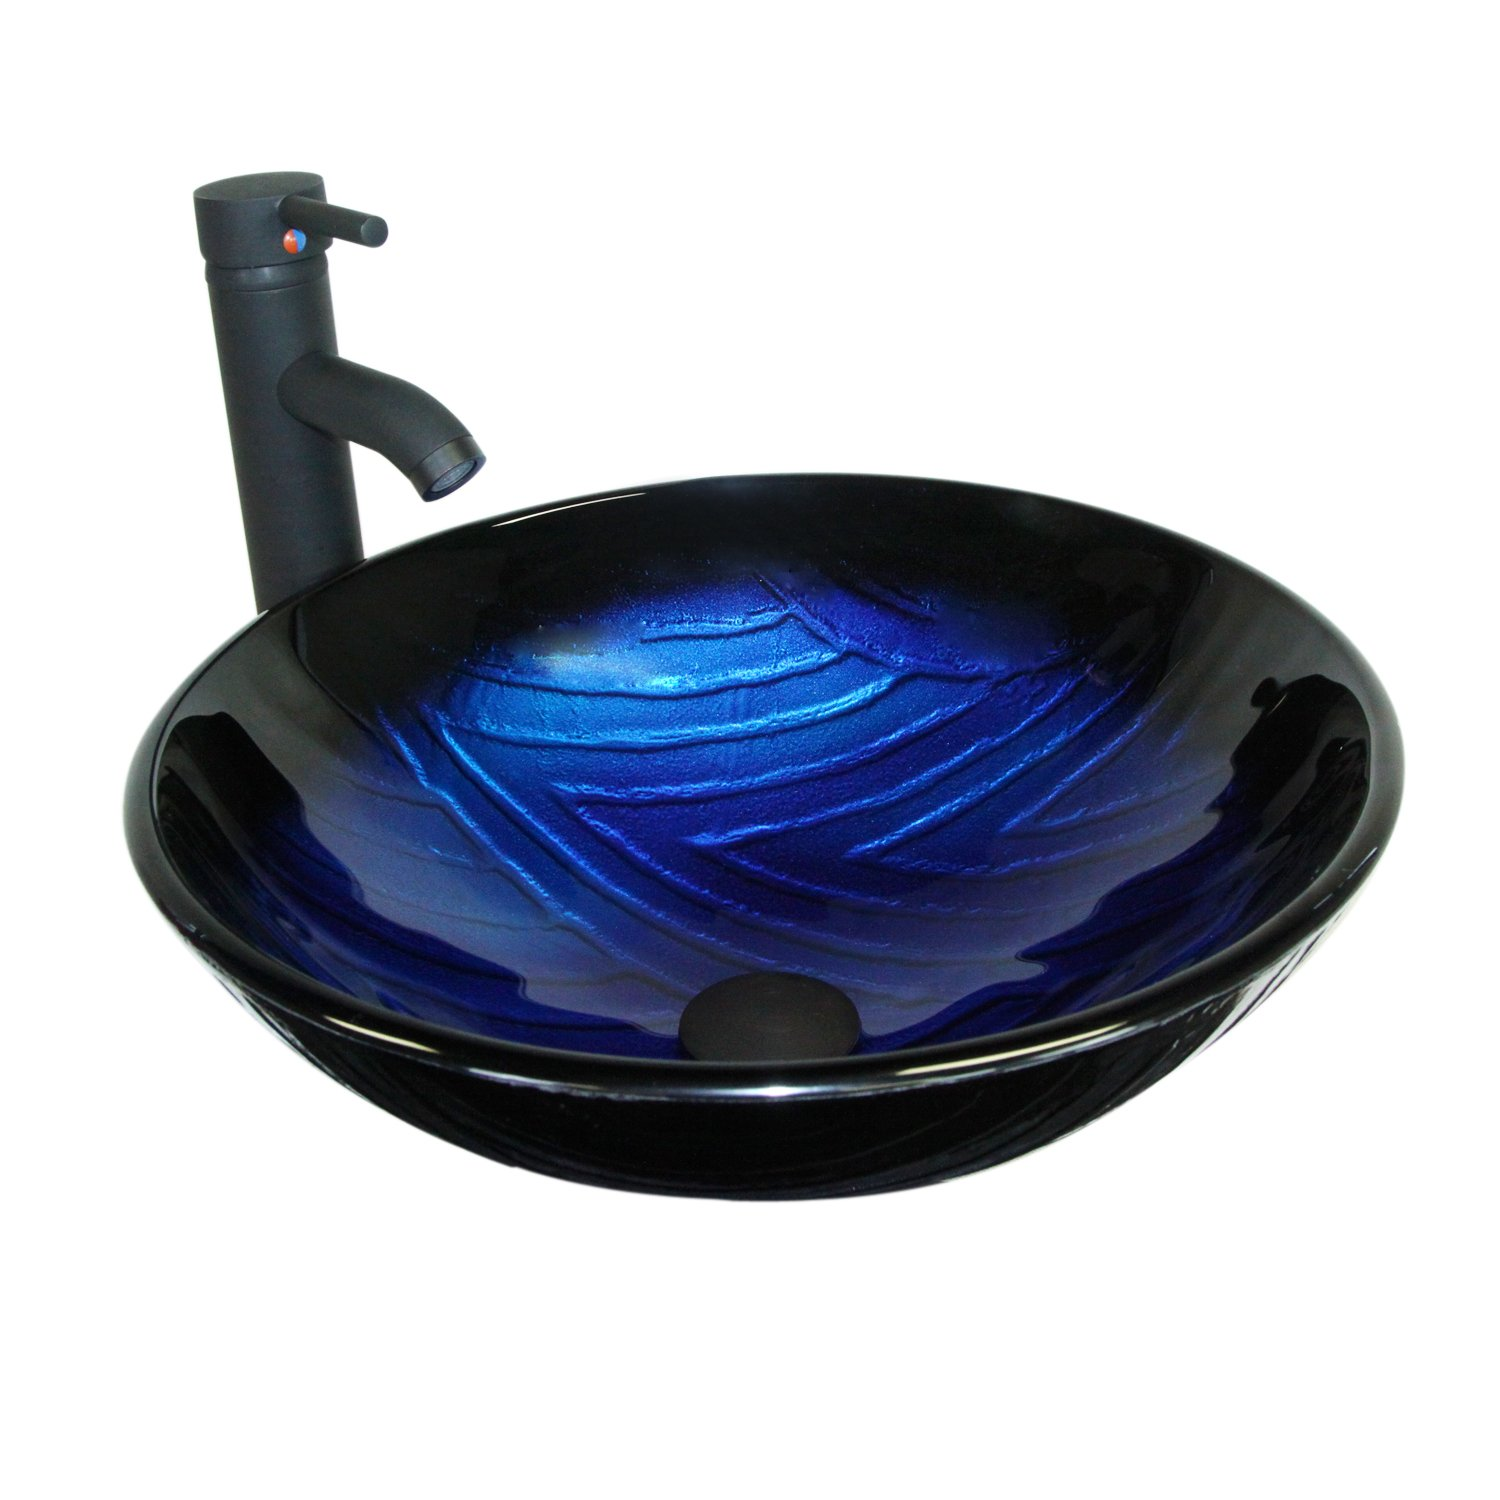 Doitpower Bathroom Round Ocean Ripple Blue Glass Vessel Sink with Oil Rubbed Bronze Faucet and Pop-up Drain Combo ( Round )